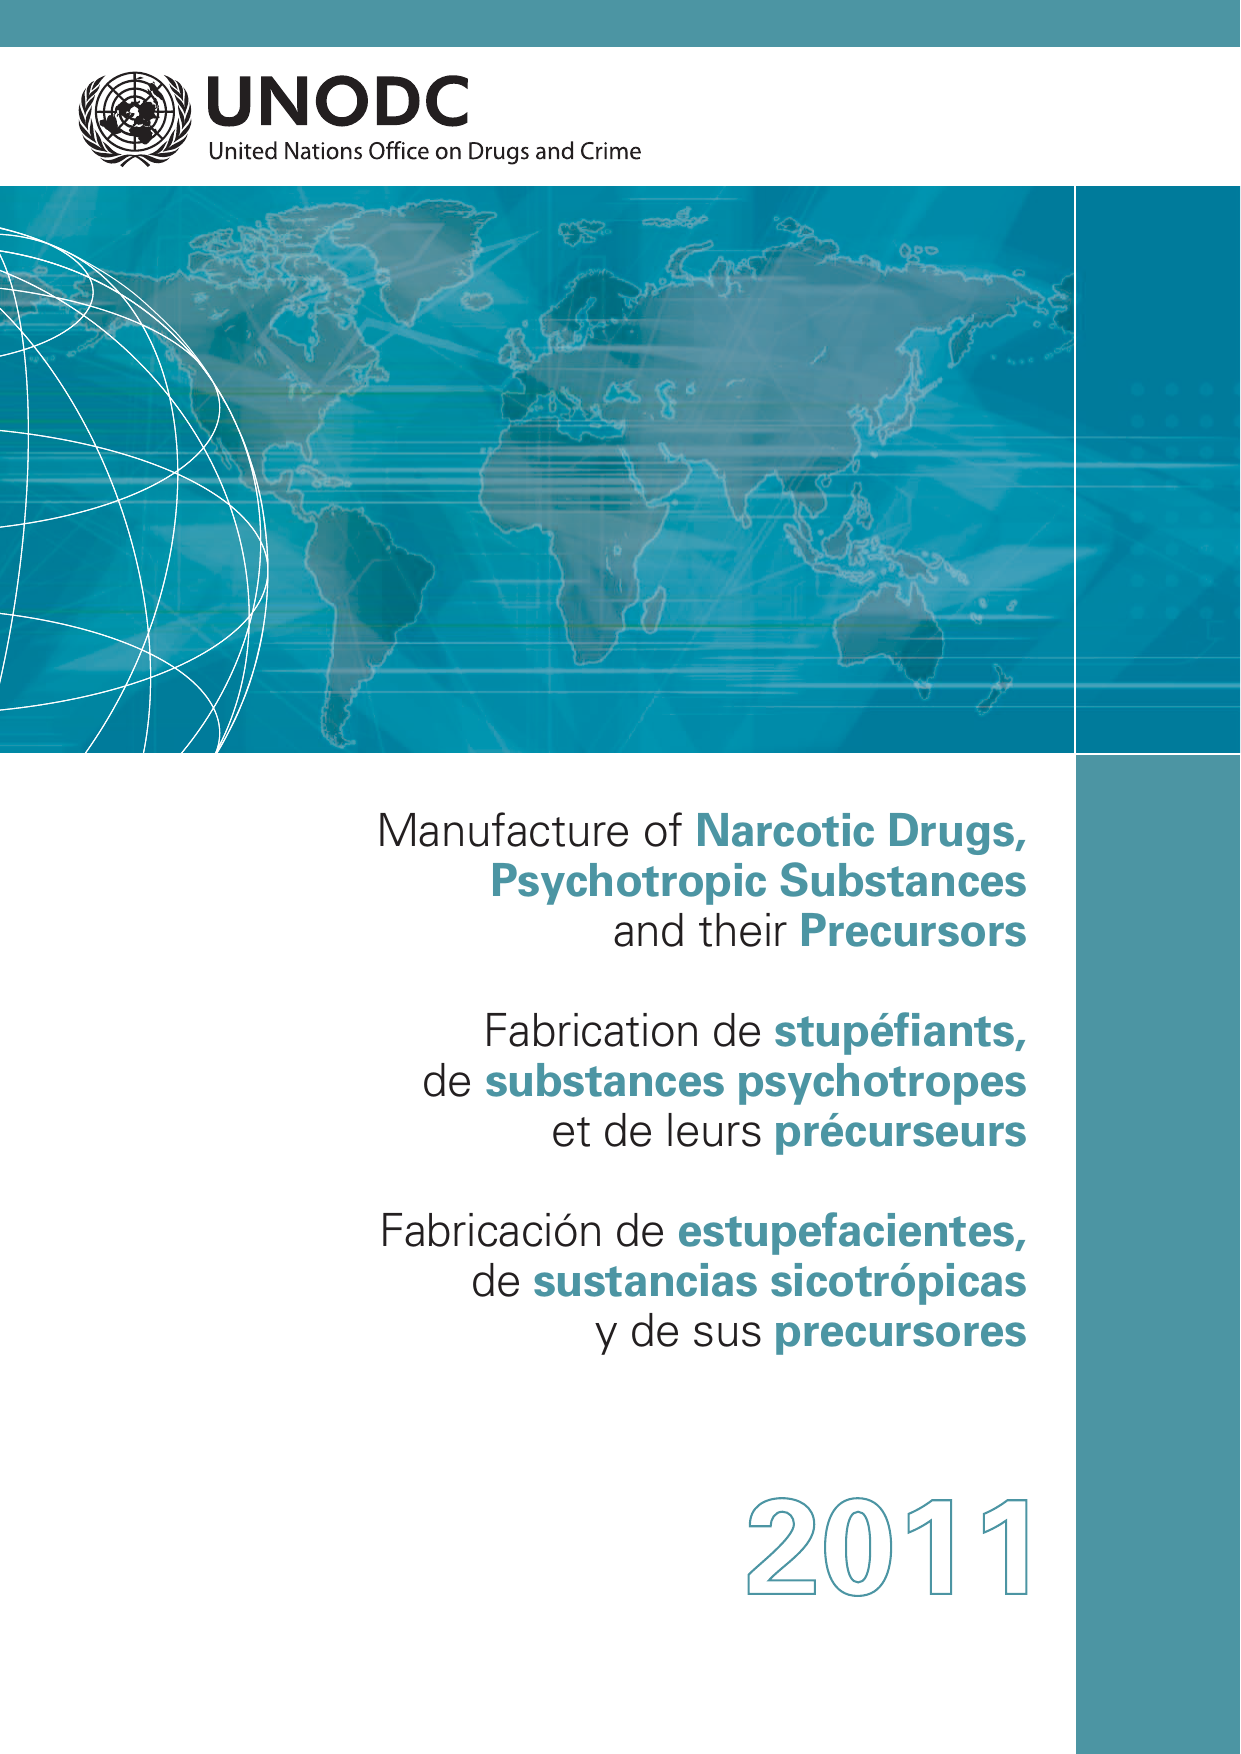 123 Manufacture of Narcotic Drugs, Psychotropic Substances